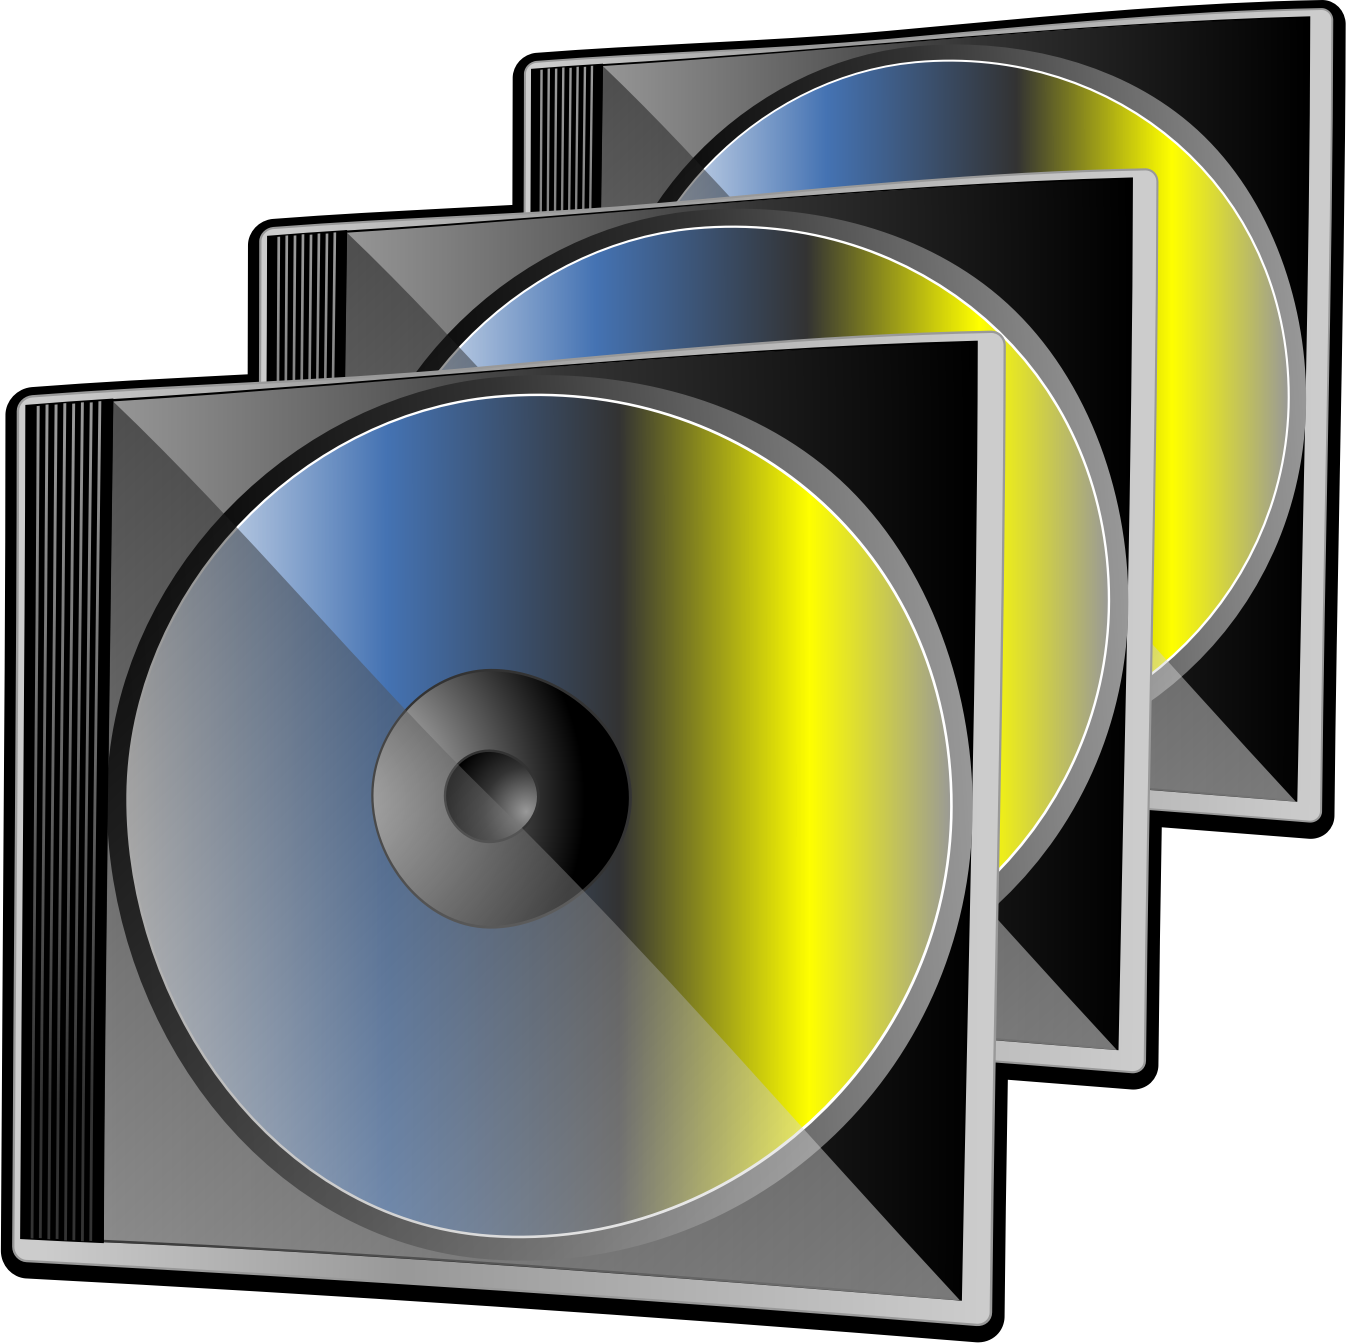 svg library download Raseone cds big image. Cd clipart.